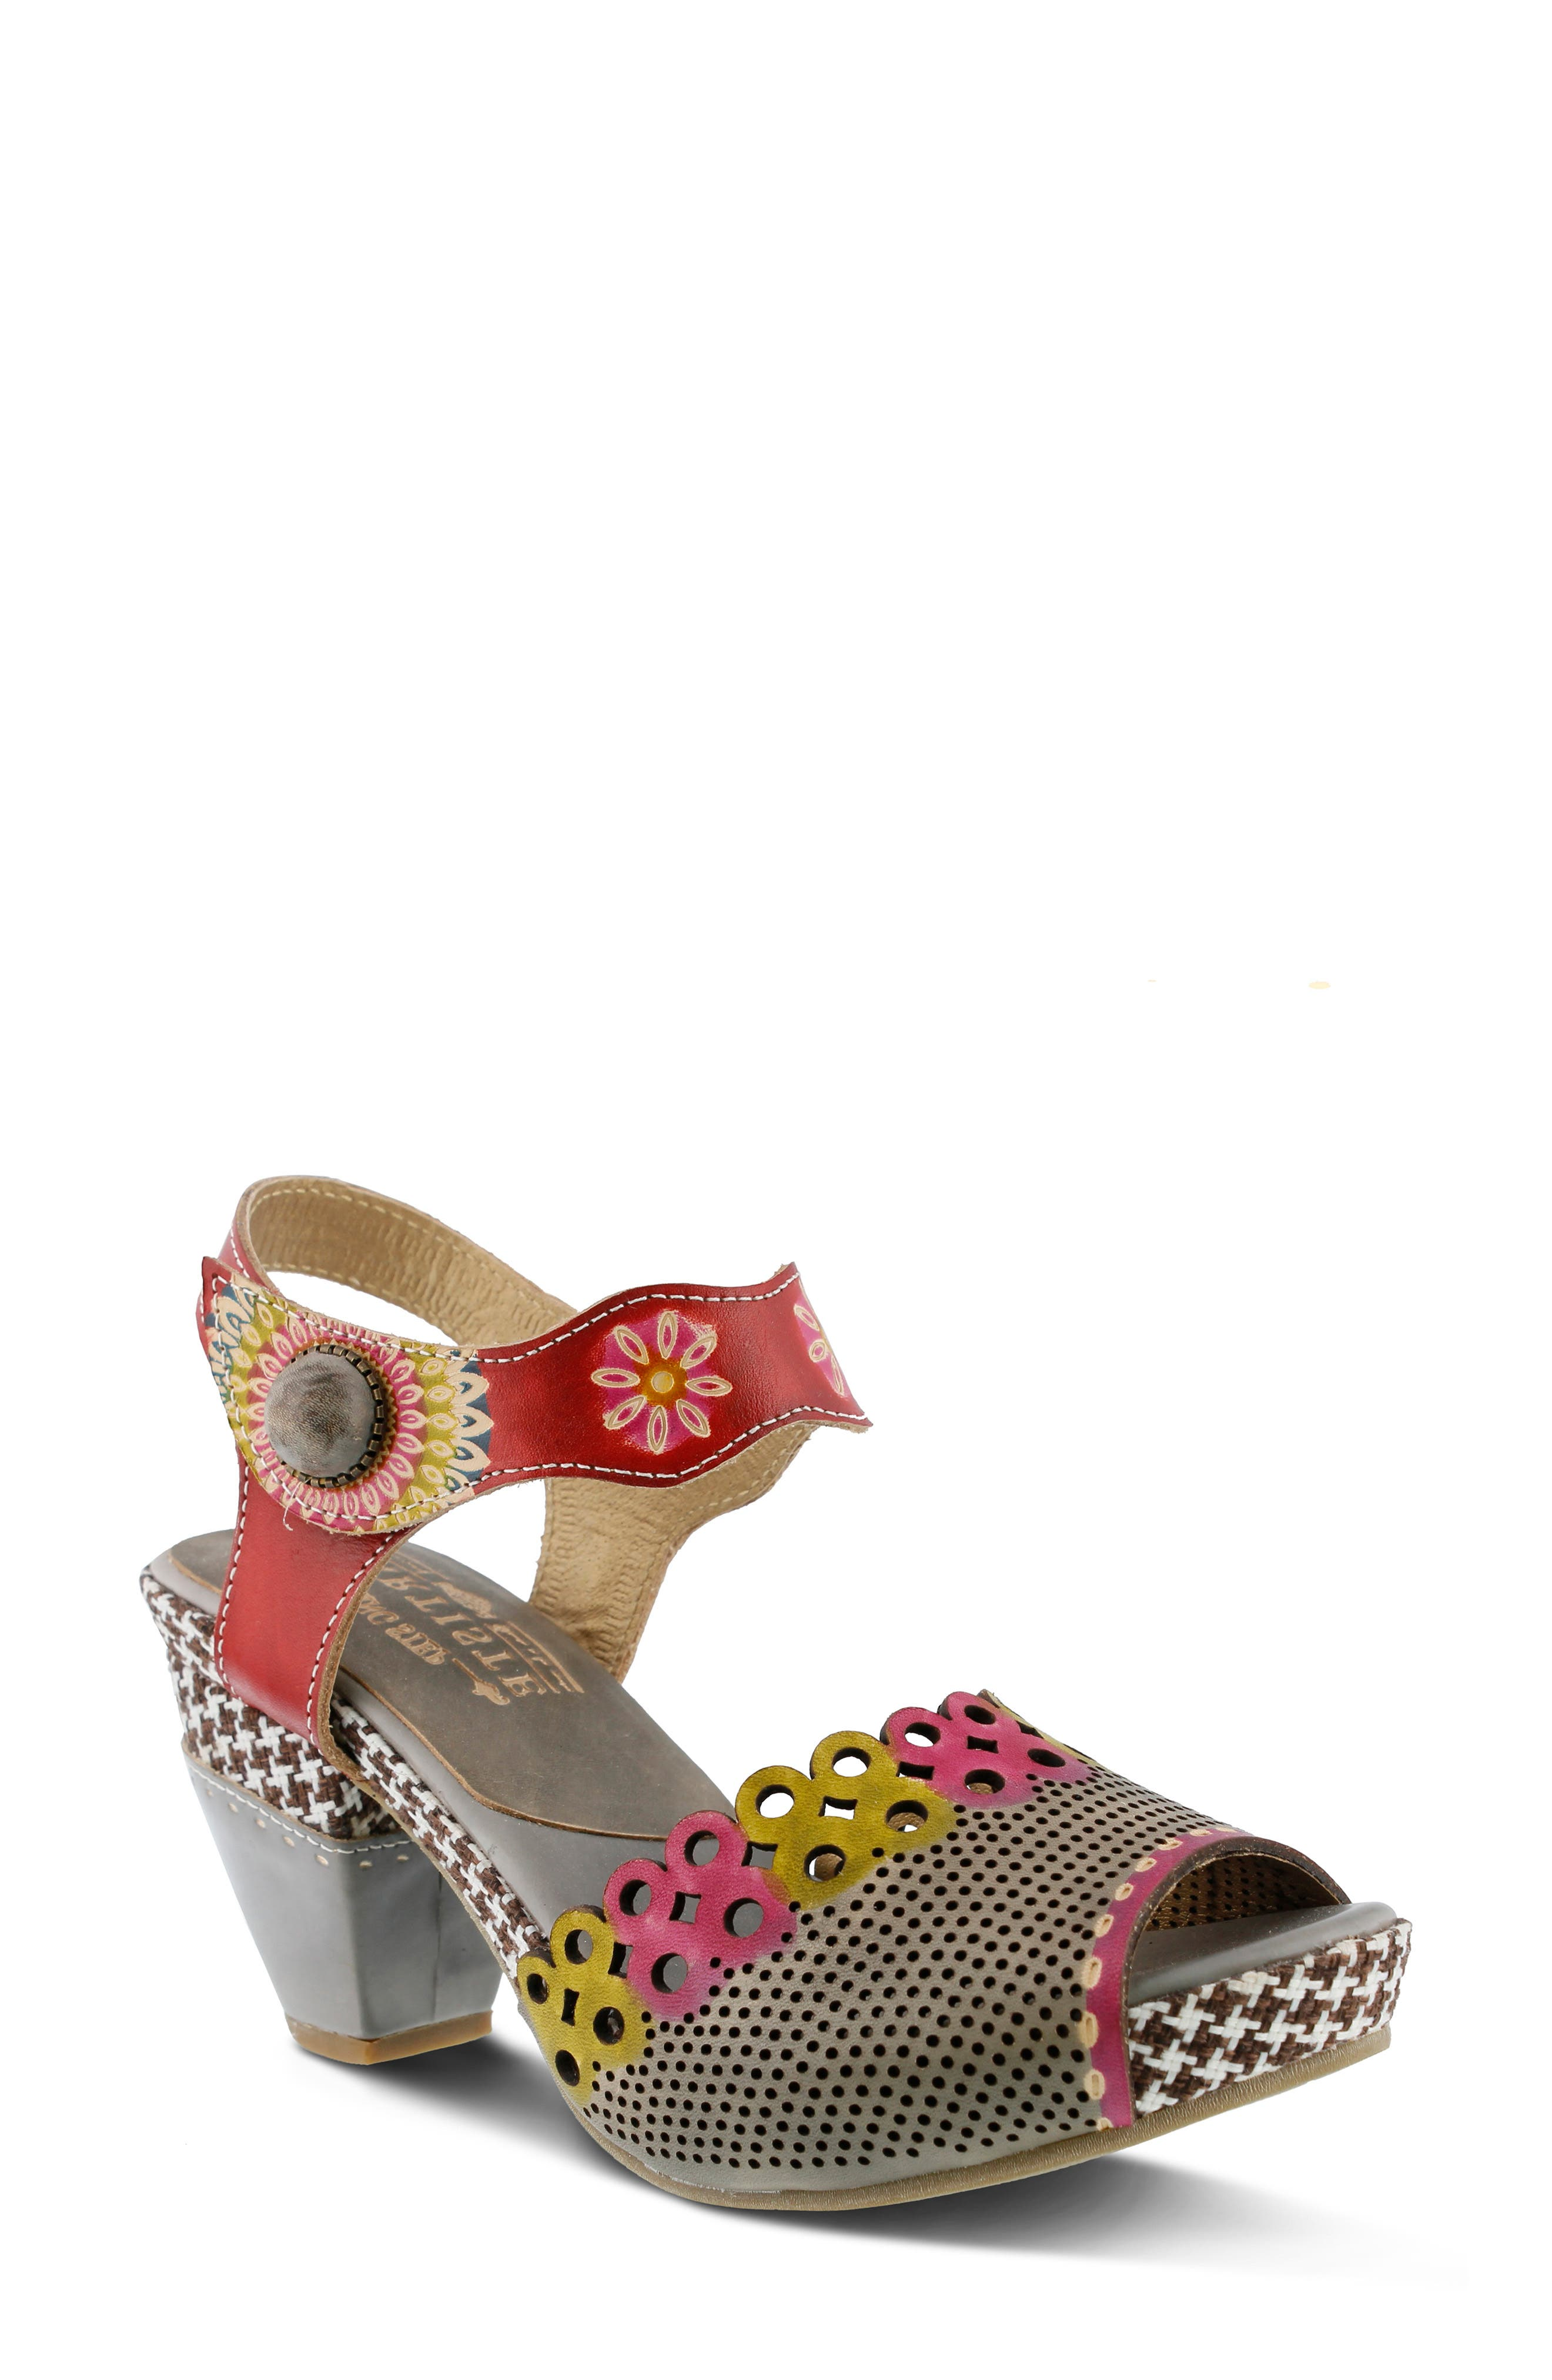 Floral embossing, geometric laser cutting and houndstooth checks combine to eclectic effect on this hand-painted leather sandal. An adjustable hook-and-loop strap and padded footbed ensure a comfortable fit. Style Name:L\\\'Artiste Jive Sandal (Women). Style Number: 5737373. Available in stores.